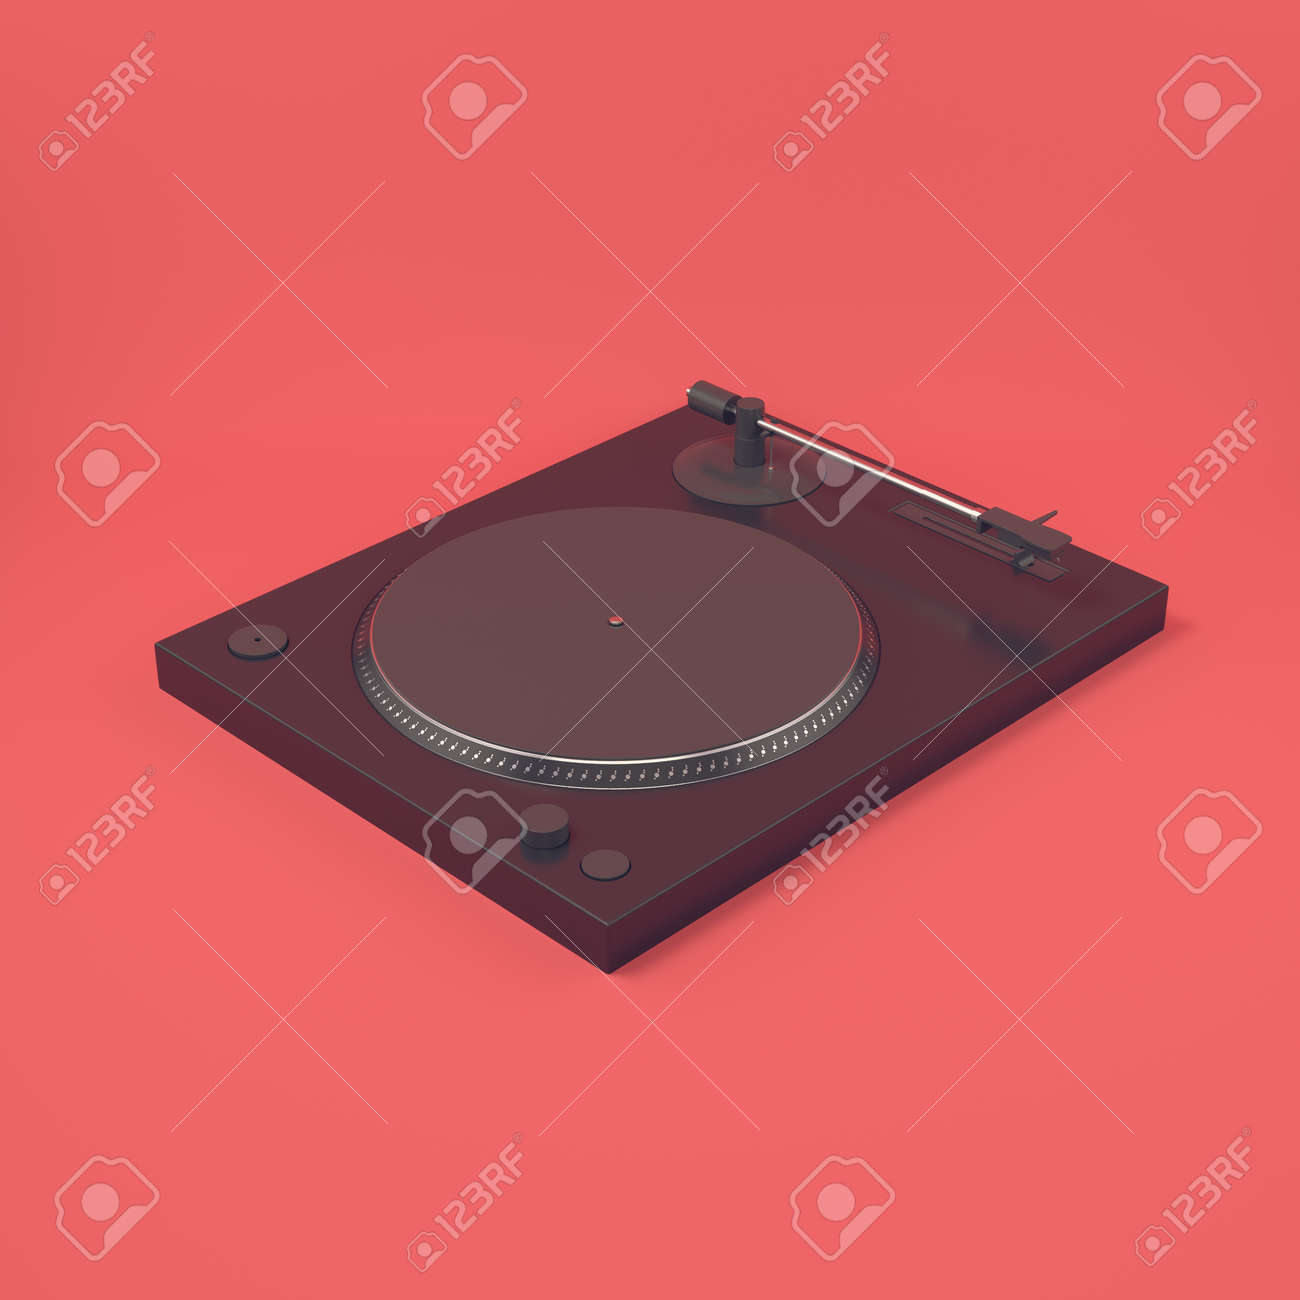 Yellow turntable on bright blue background in pastel colors. Minimalism concept. 3d render - 170609756